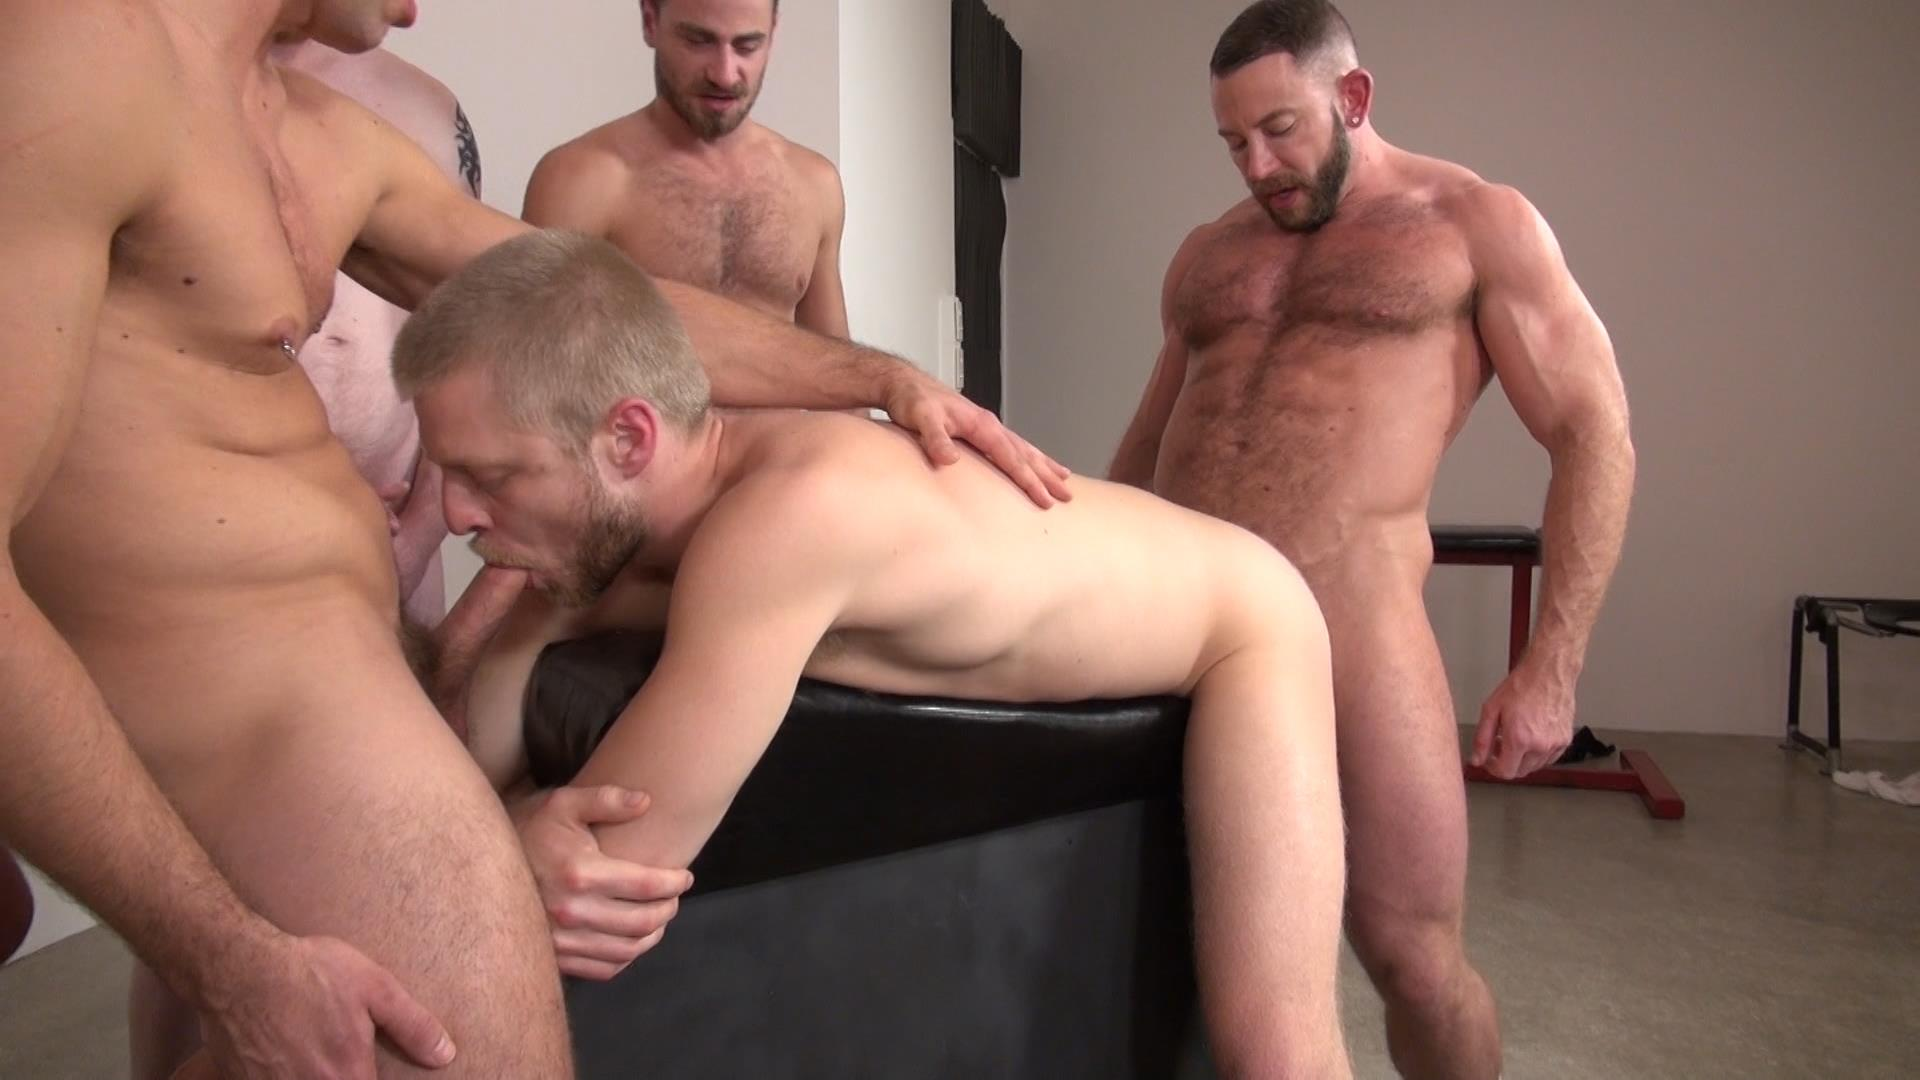 Raw and Rough Bareback Gay Sex Orgy Amateur Gay Porn 09